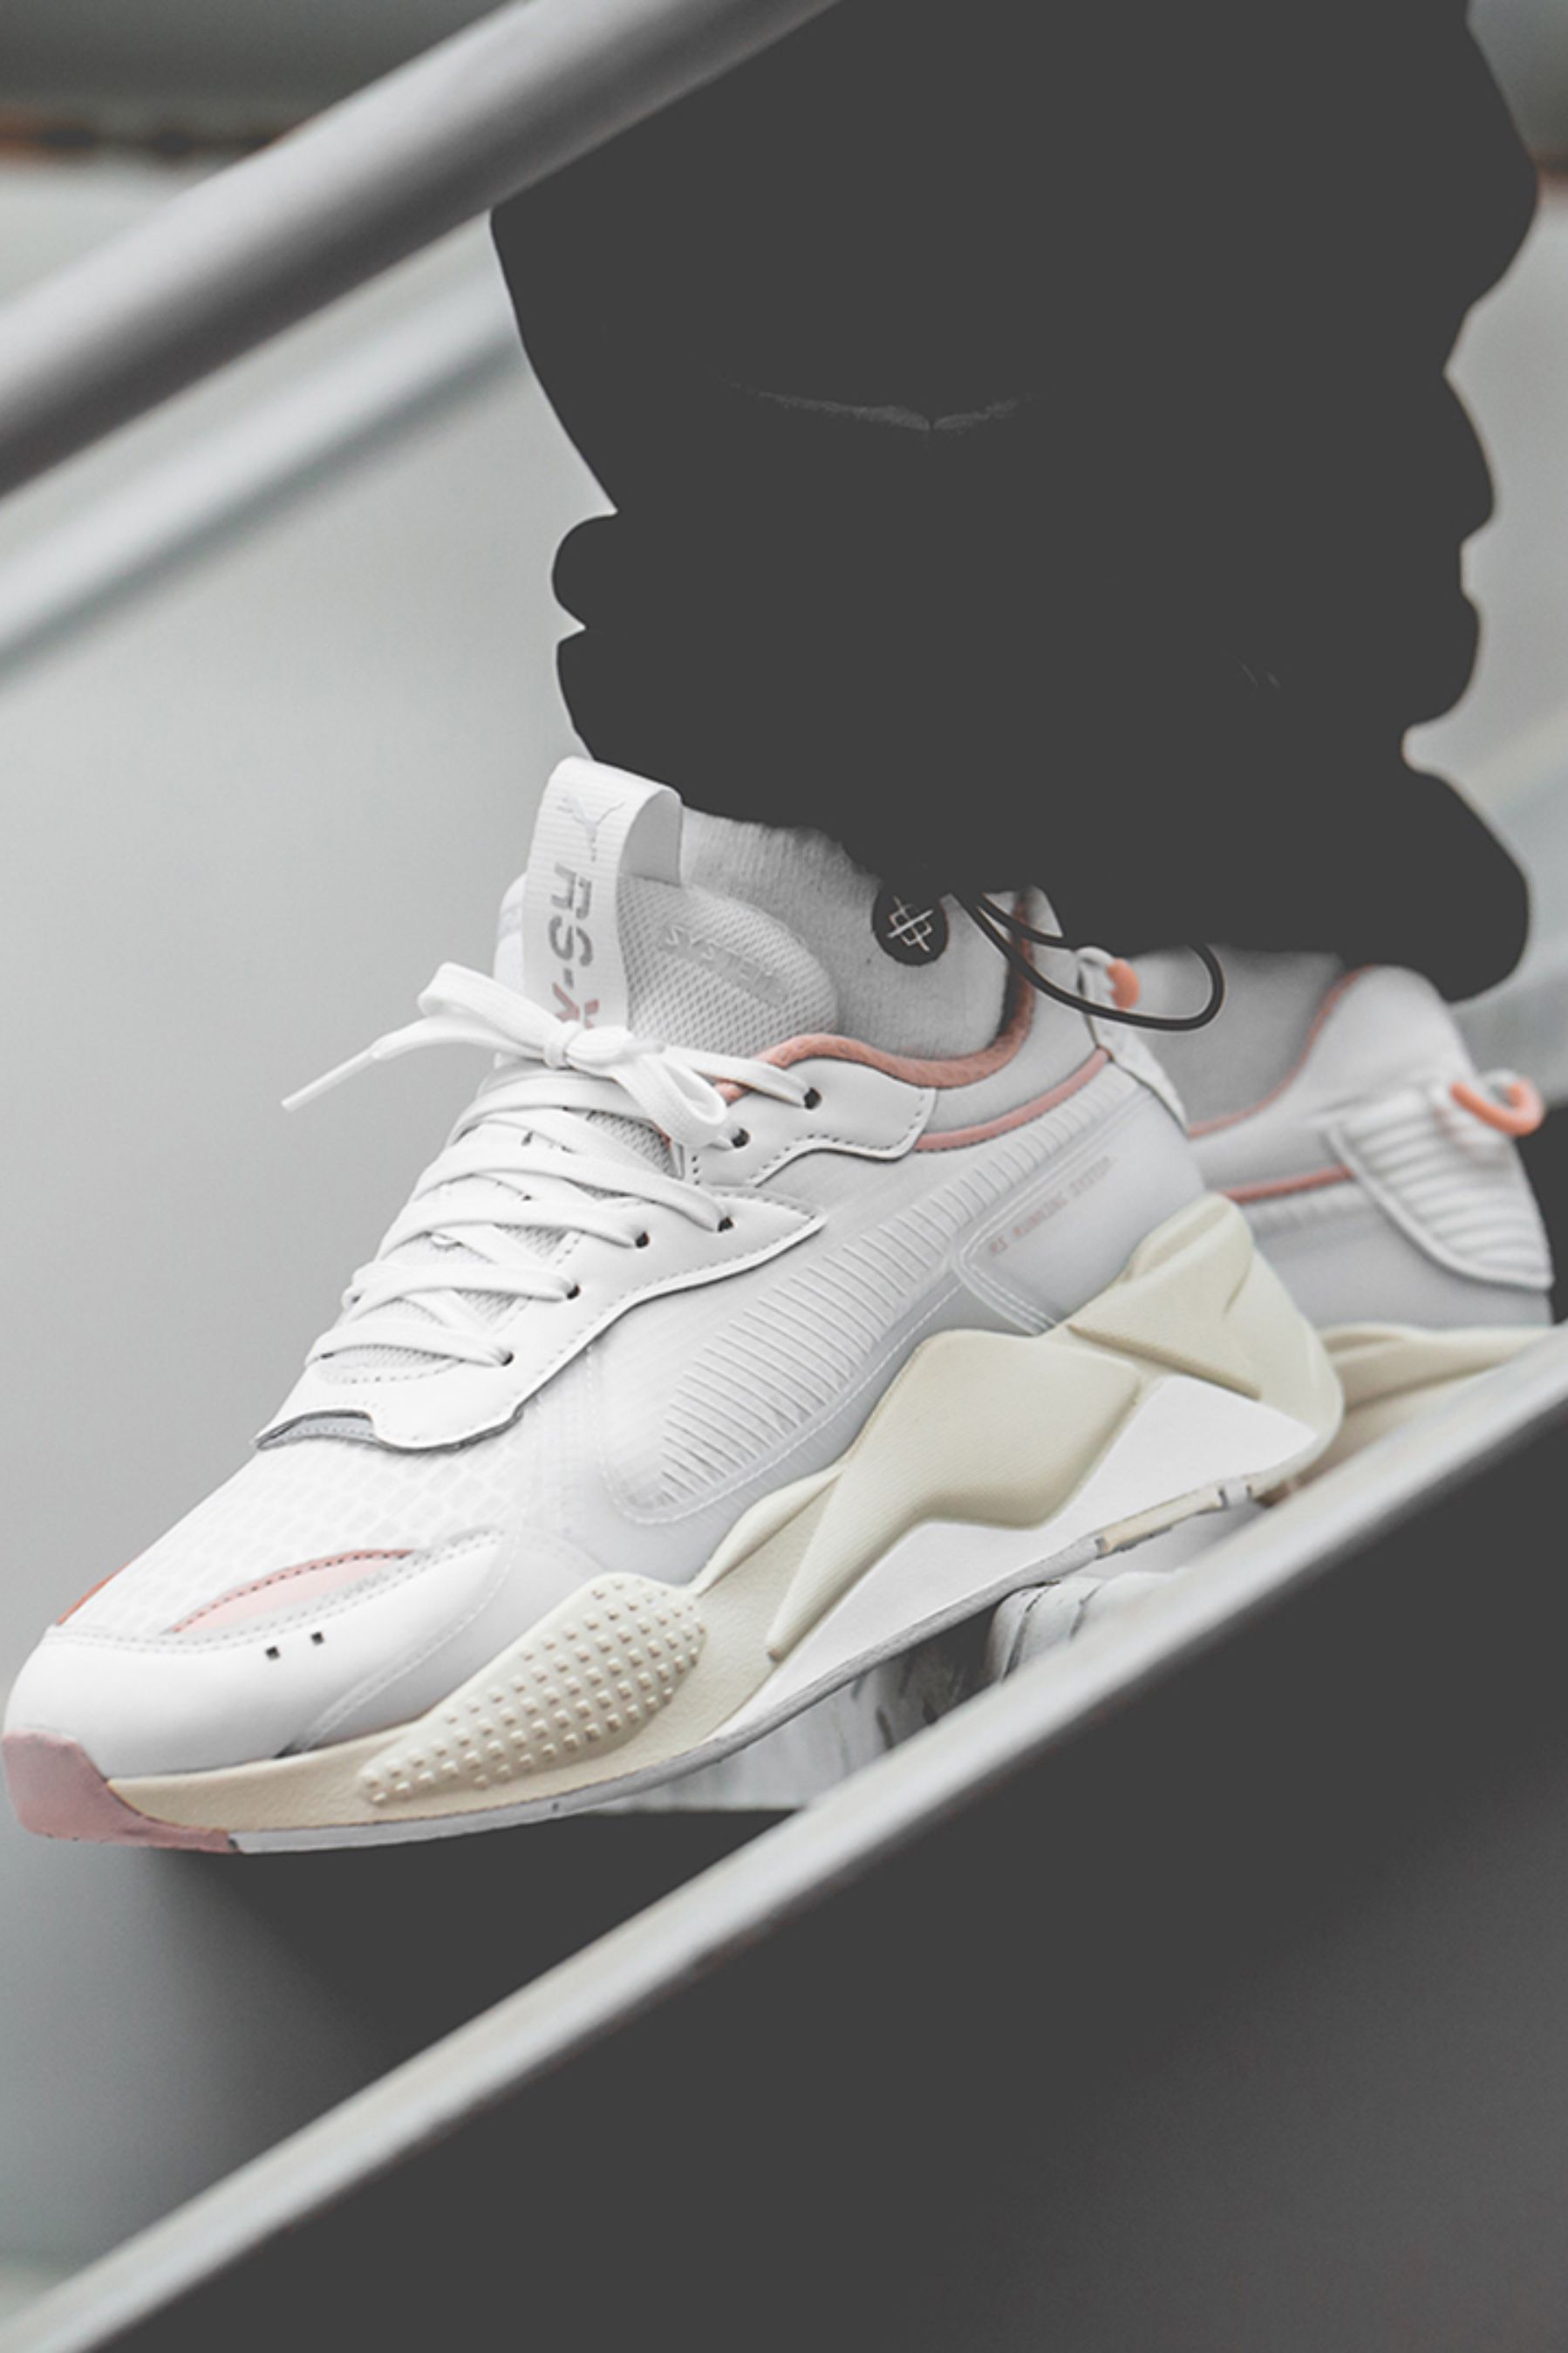 Puma RS X Tech (white rose) 369329 04 in 2019 | Sneaker